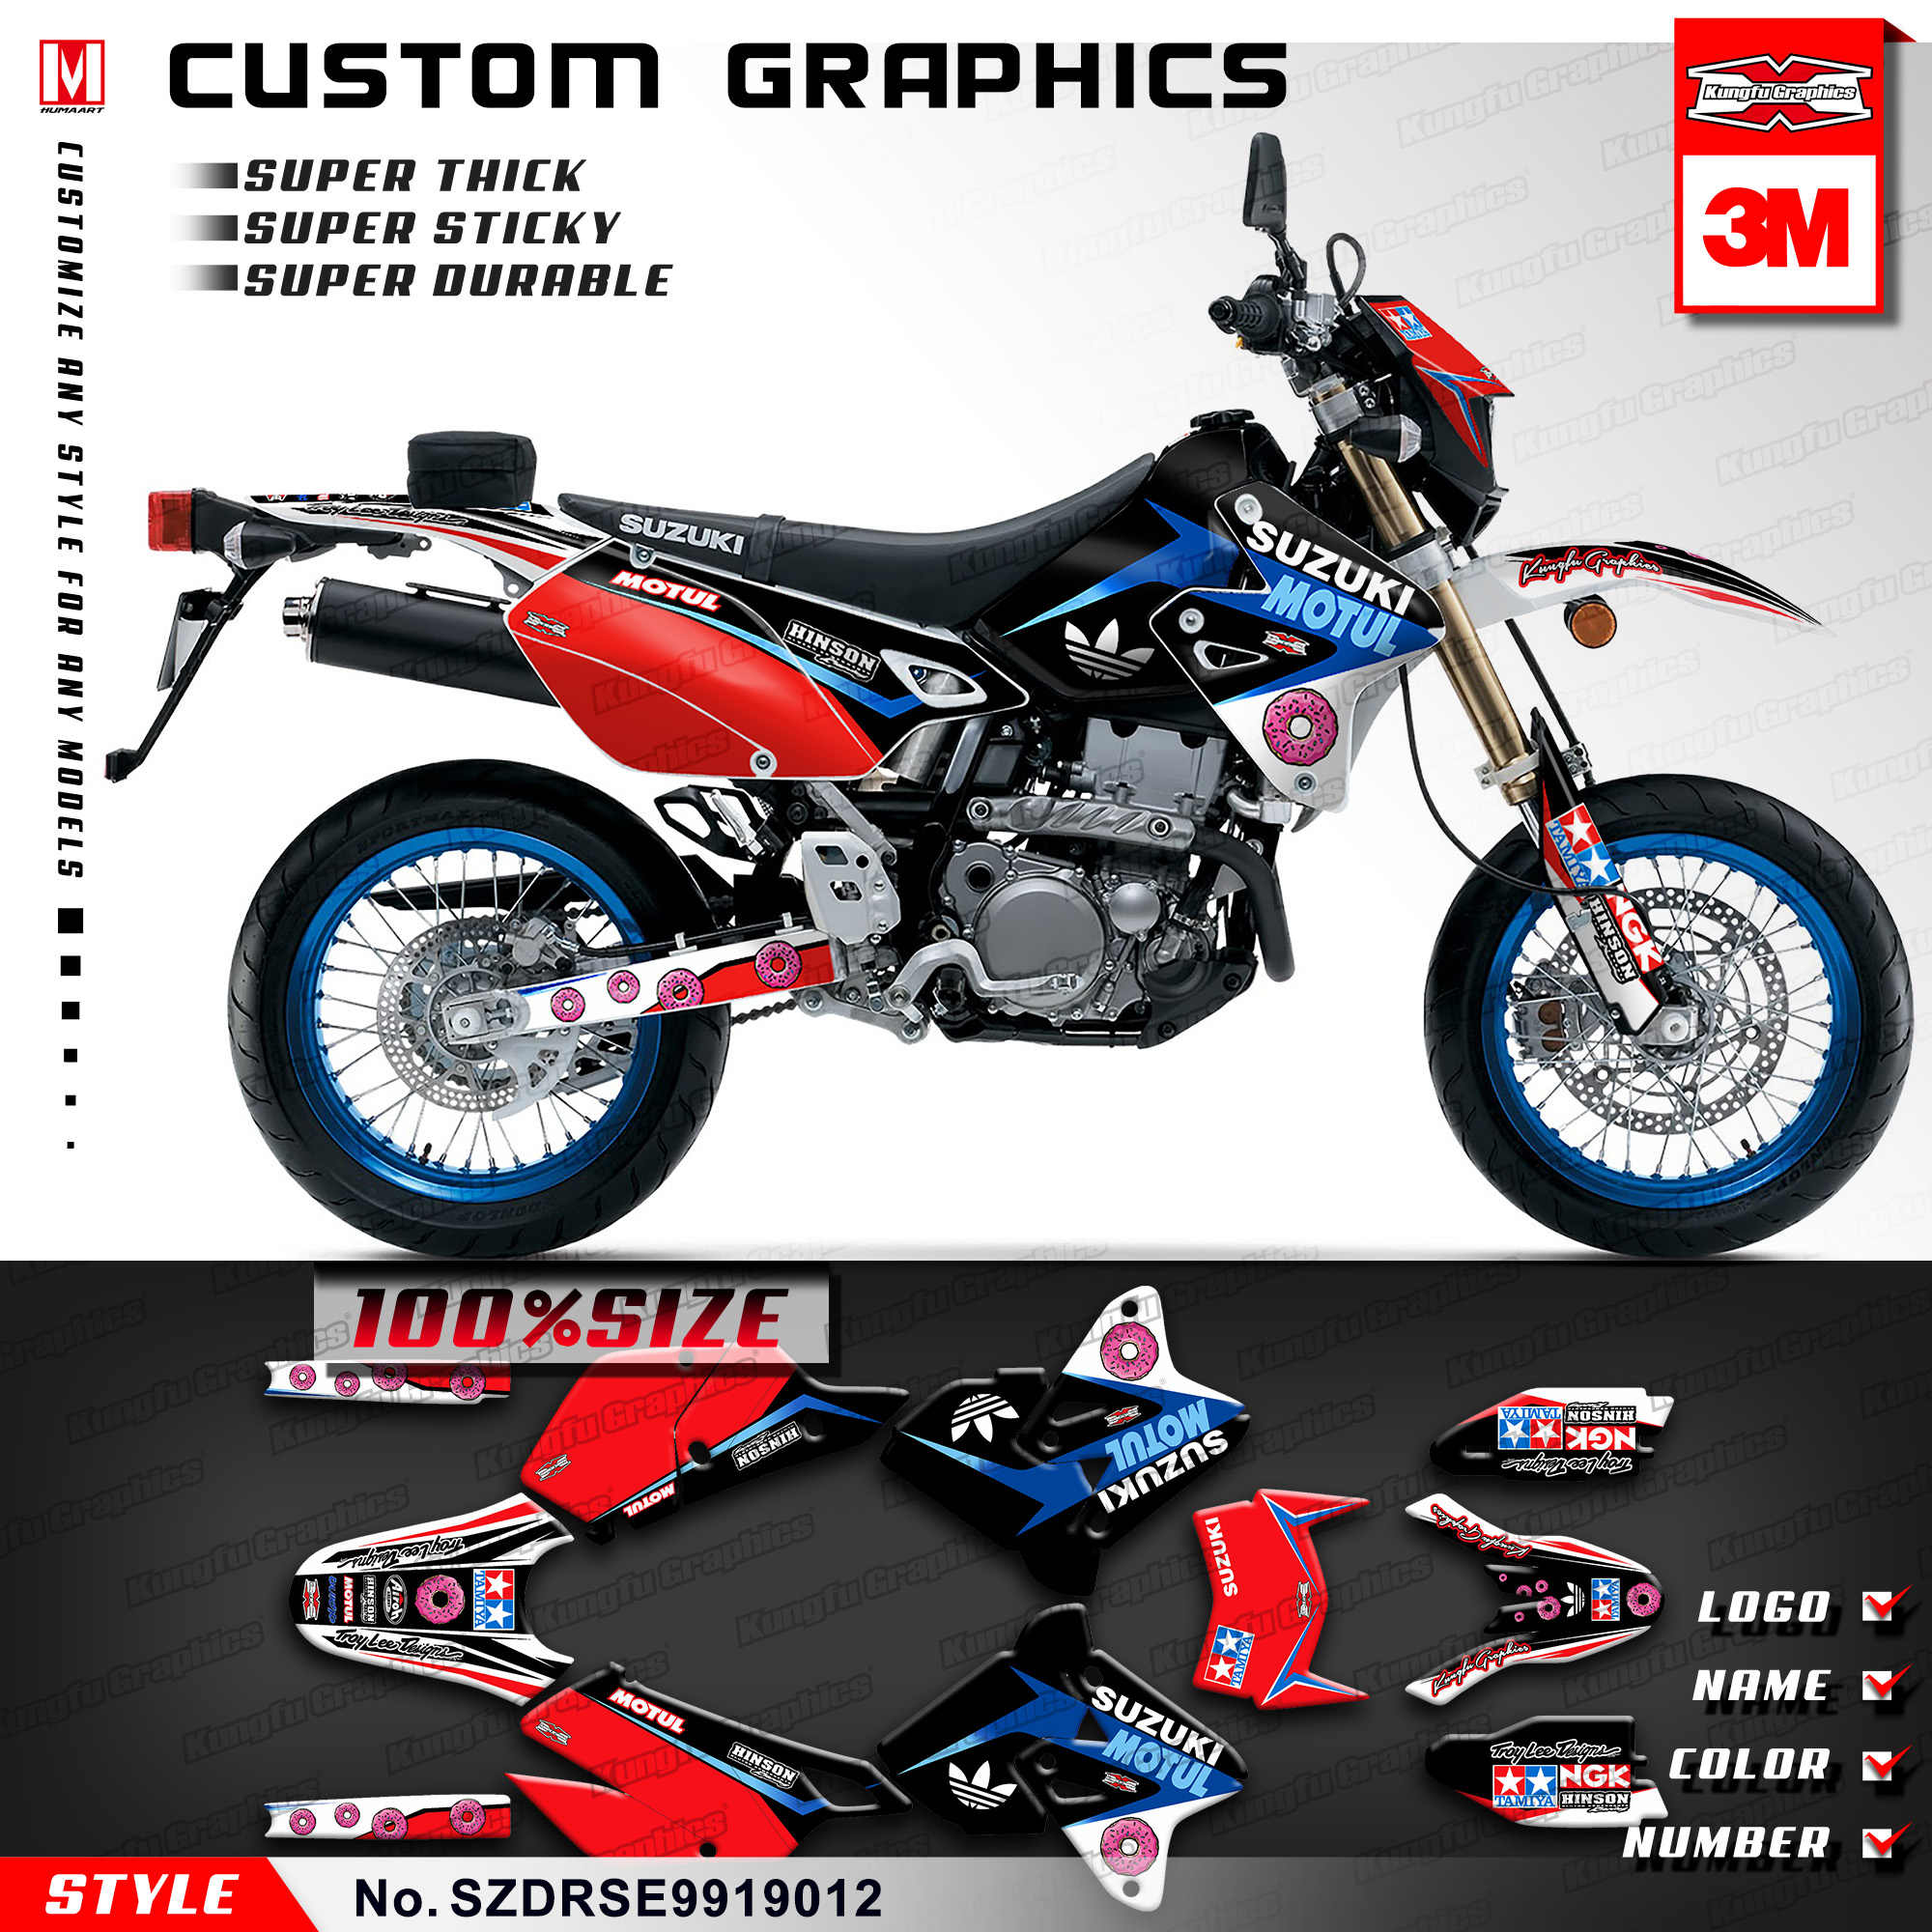 Wondrous Kungfu Graphics Dirt Bike Stickers Motorcycle Decals Kit For Gmtry Best Dining Table And Chair Ideas Images Gmtryco